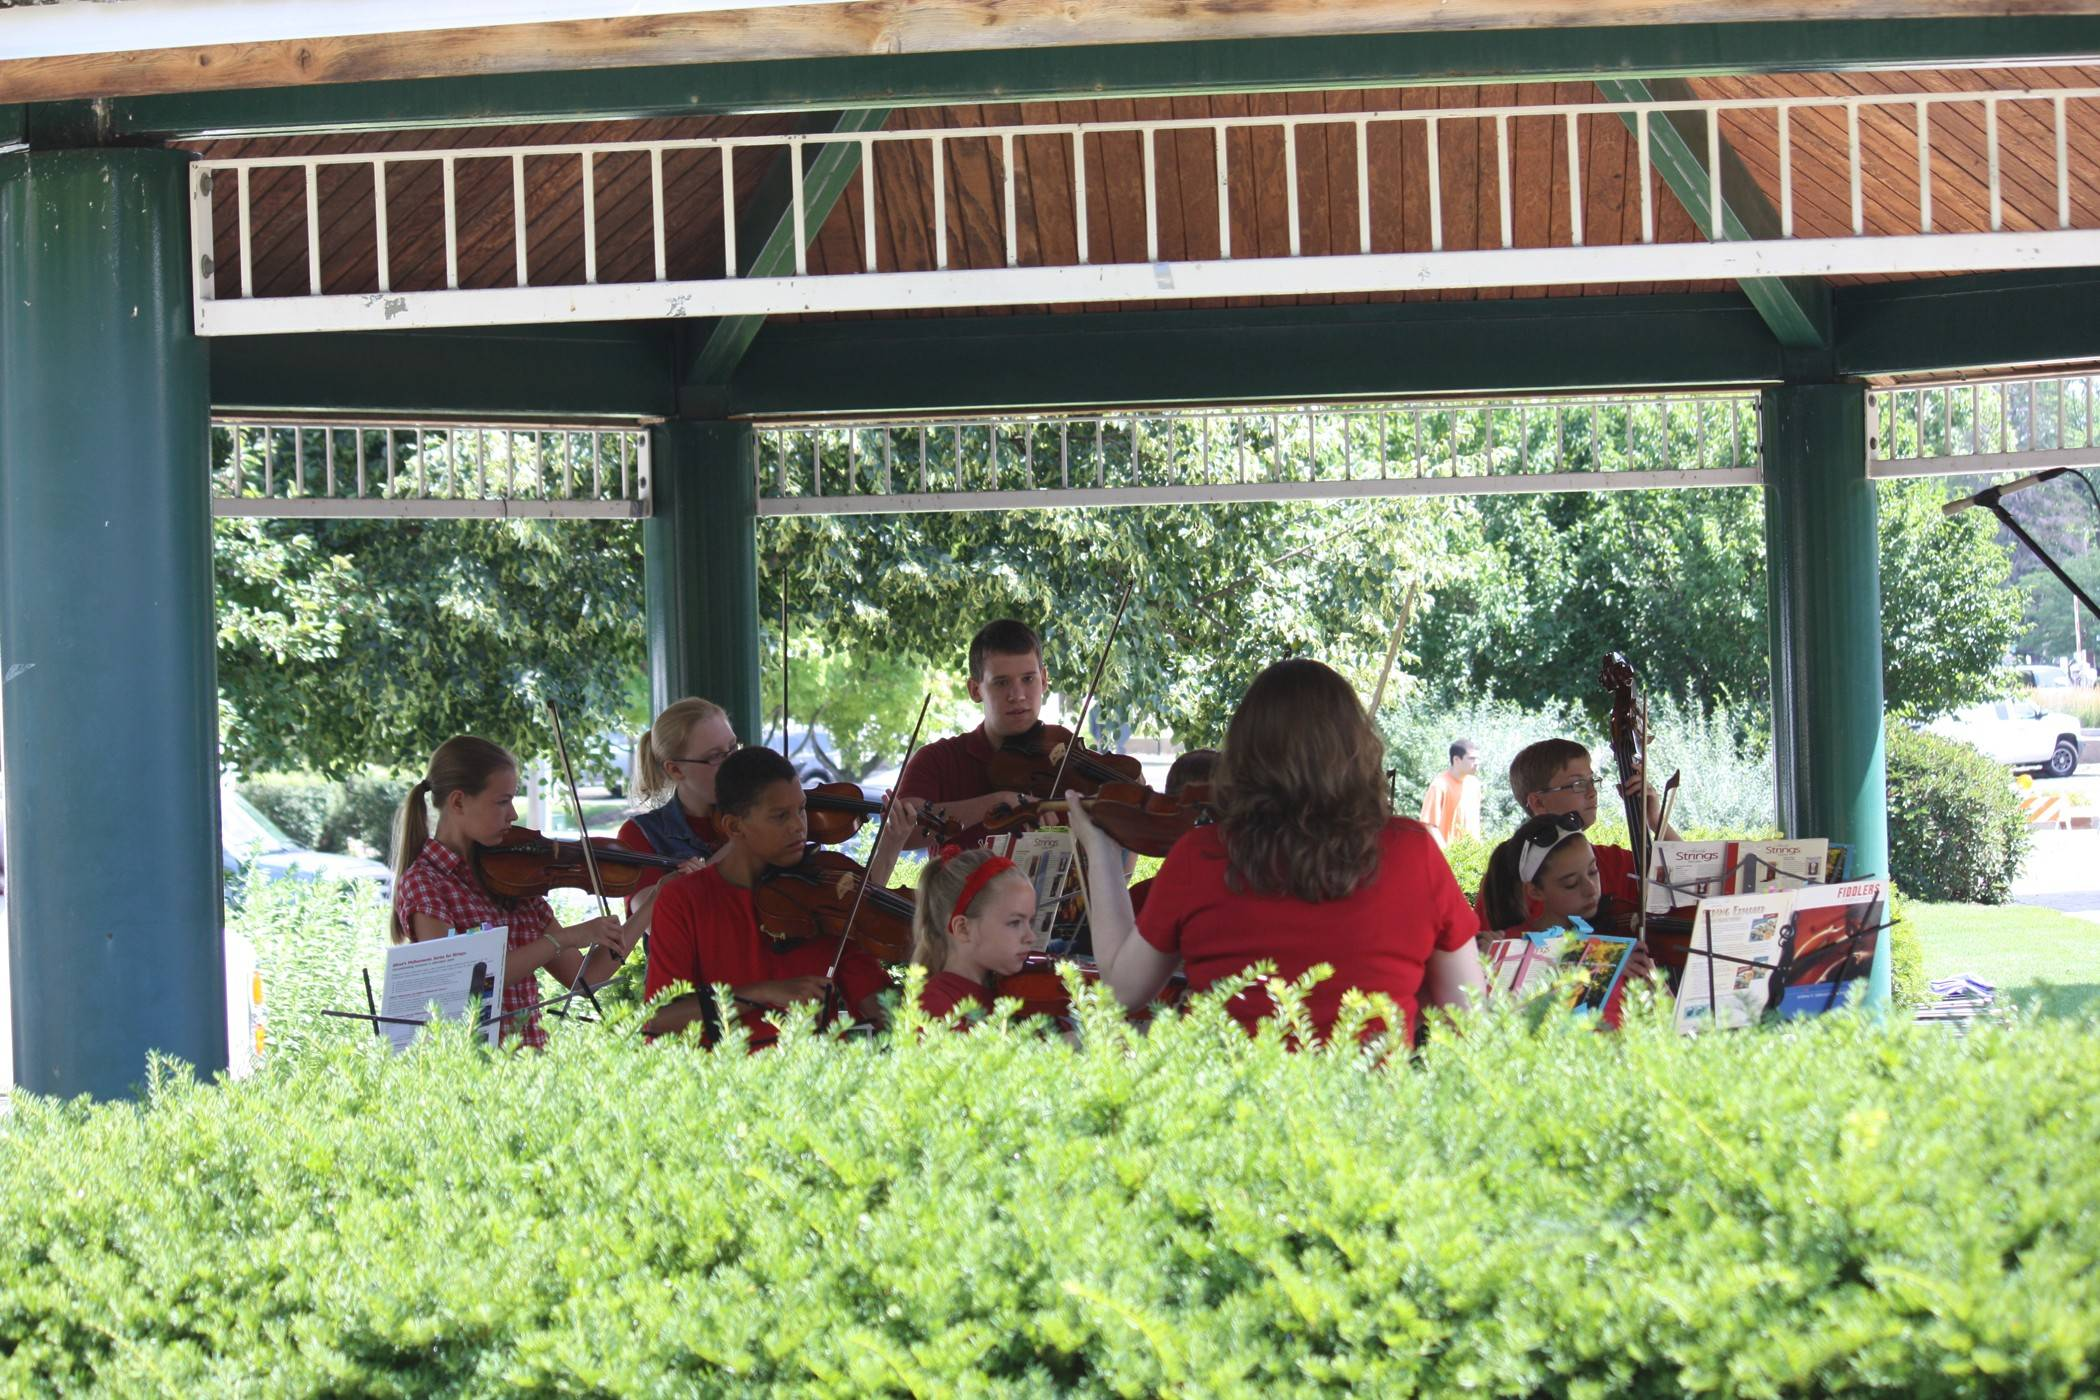 String music will be among the entertainment Saturday during Arts in the Park at Towne Square in downtown Palatine. The free event from 10 a.m. to 2 p.m. celebrates the arts through live entertainment and art projects for children of all ages.